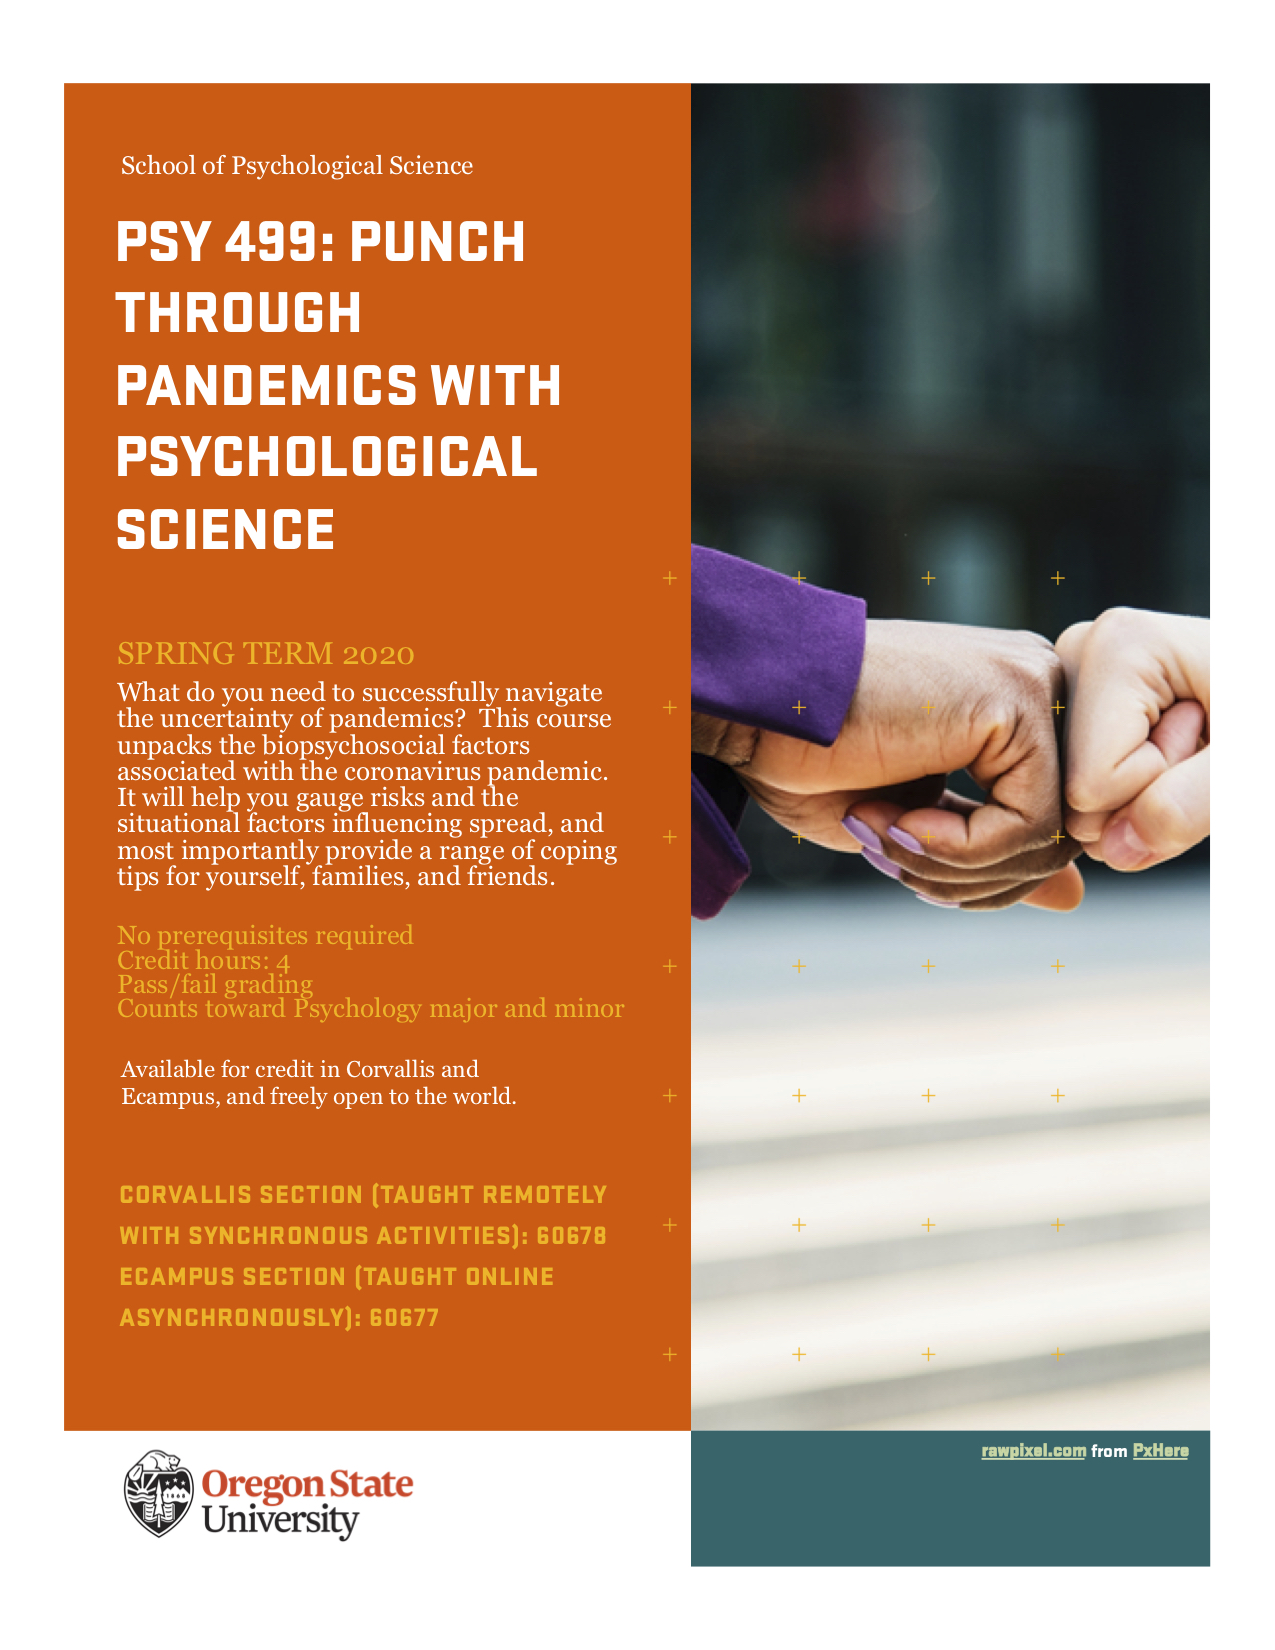 PSY 499 Punch Thru Pandemics Flyer